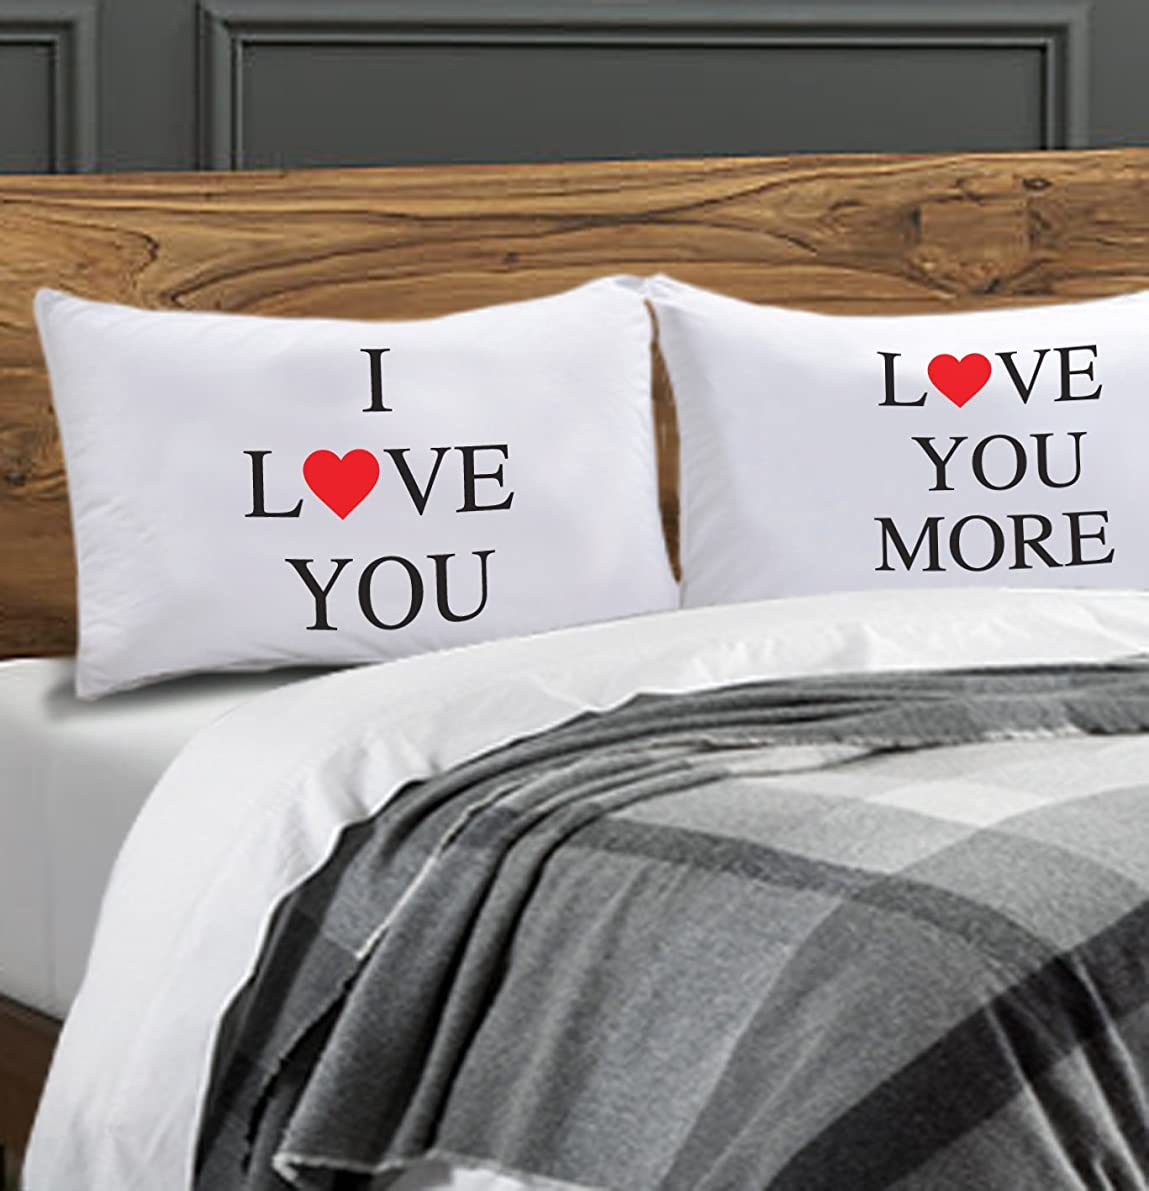 I LOVE YOU Pillow Case Set Valentines Day Gift - Includes (2) 20